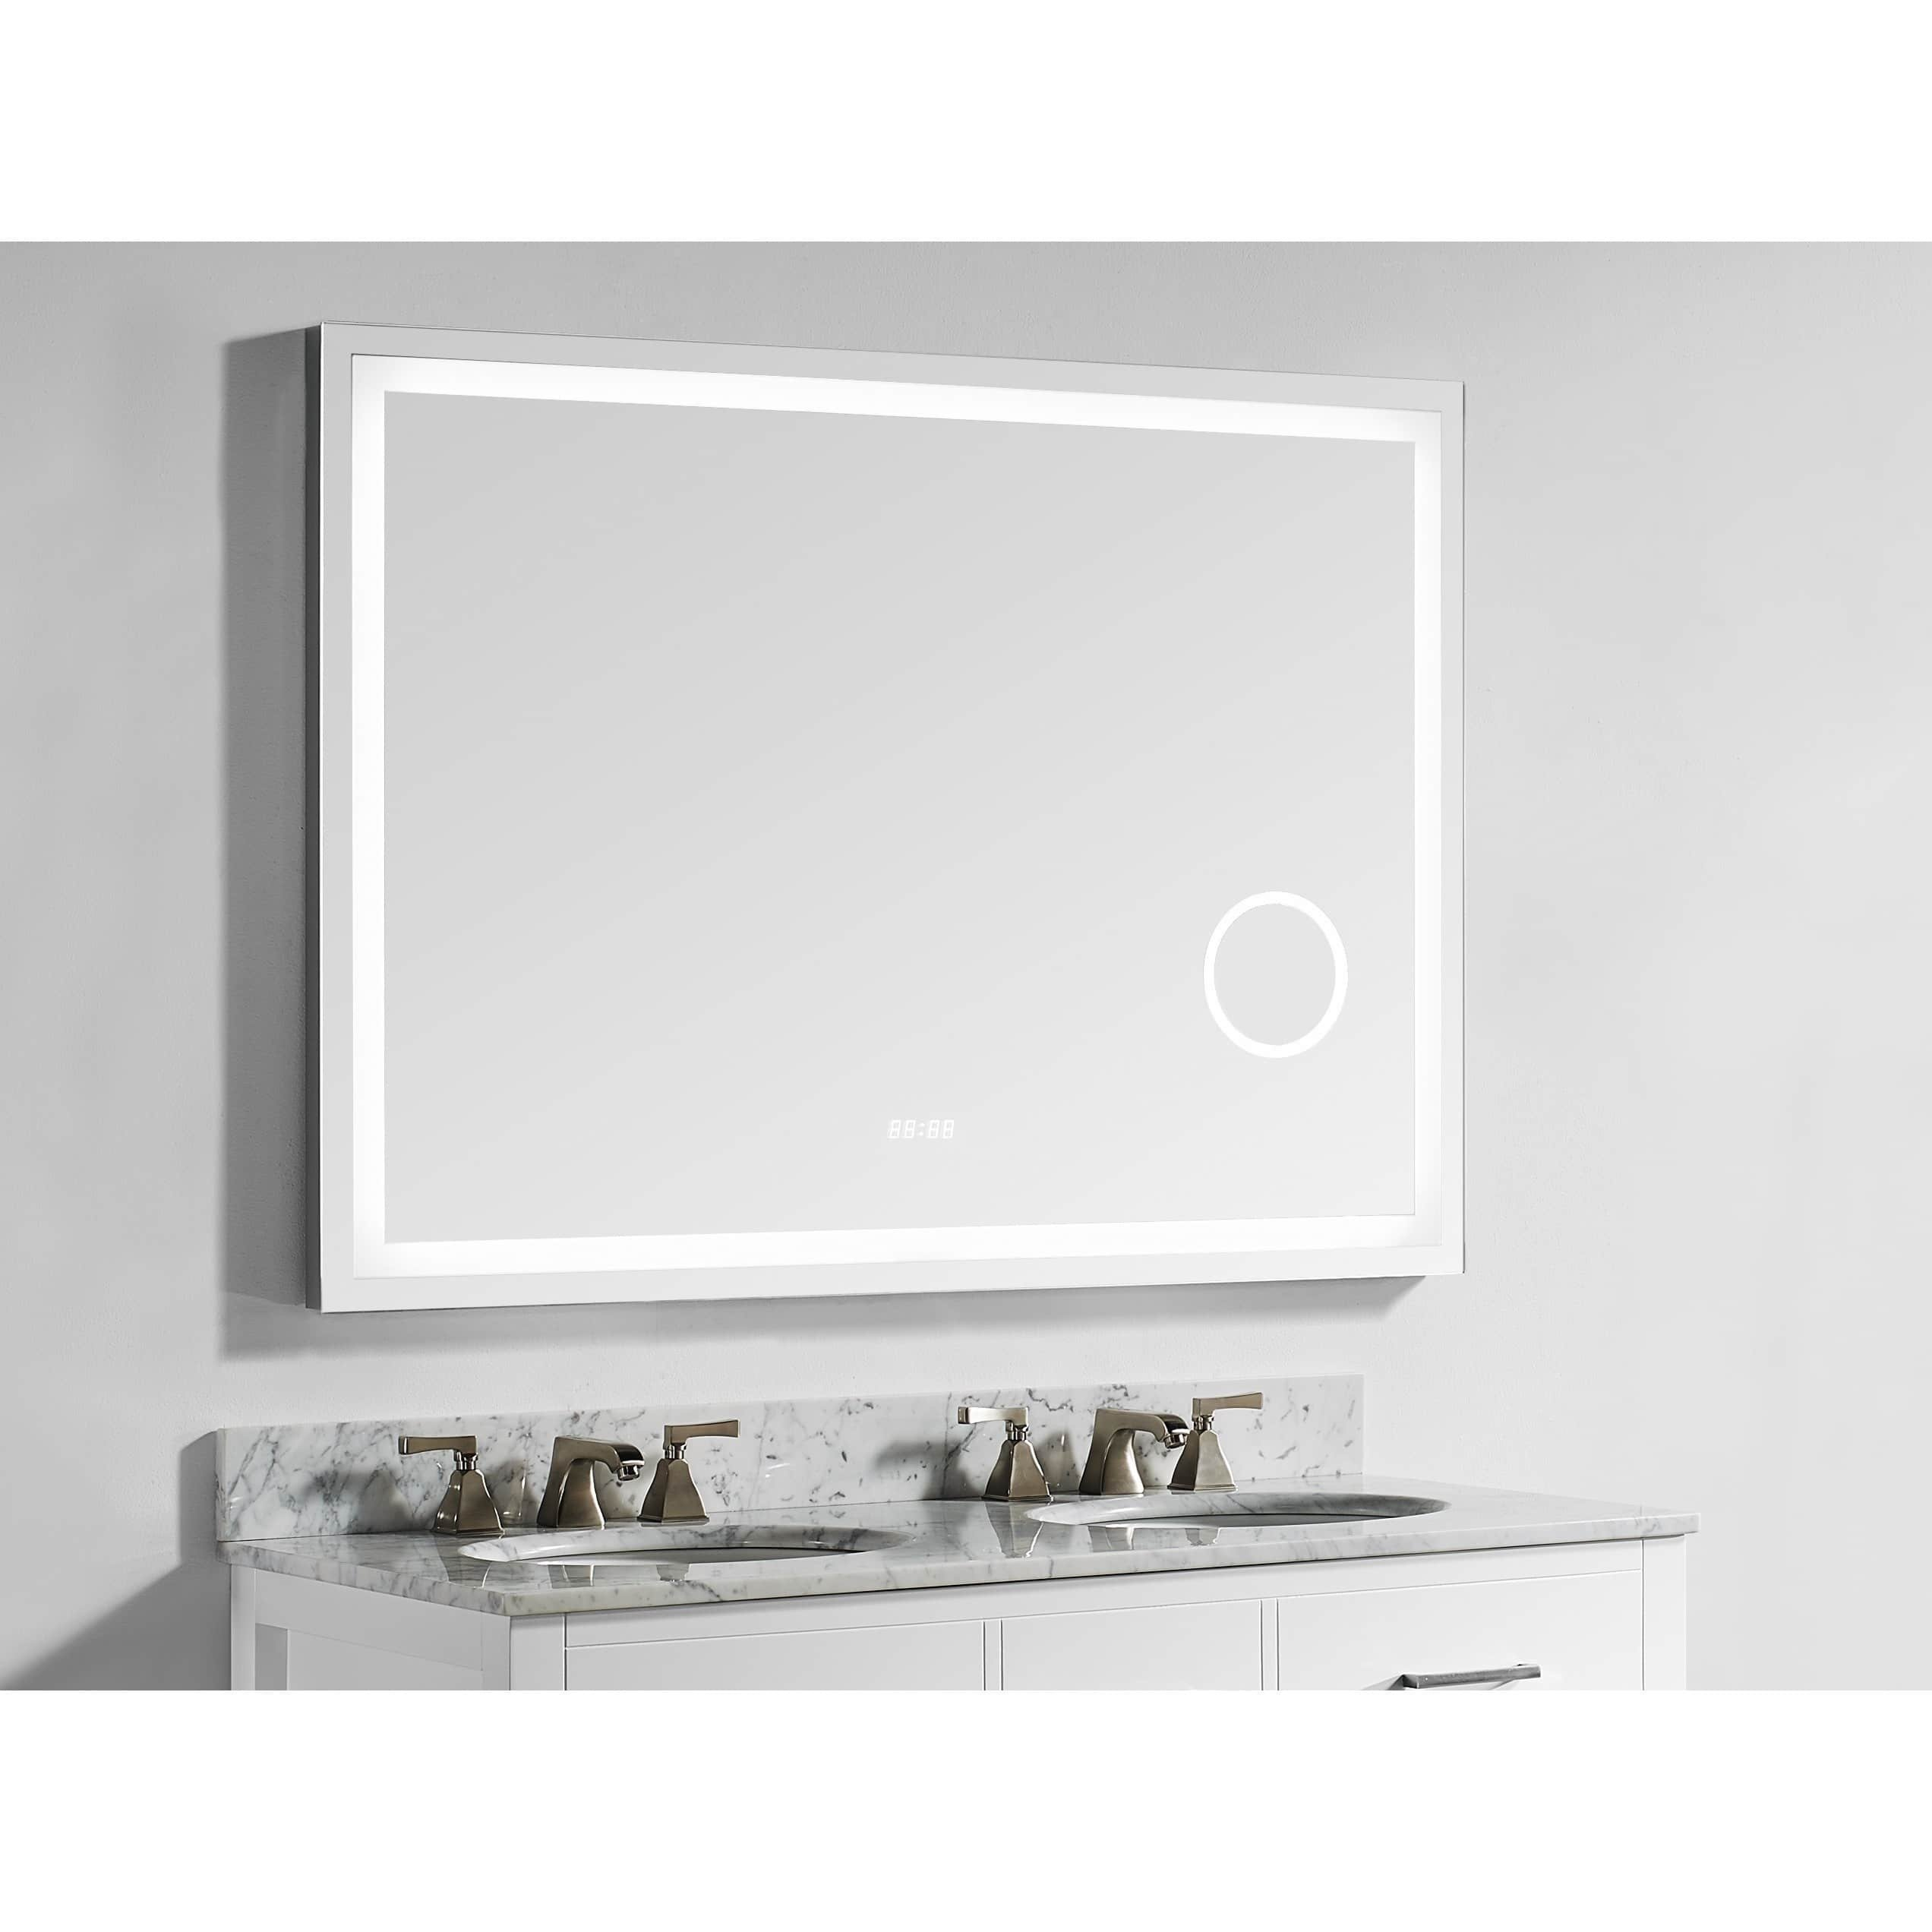 Innoci-USA Eros Rectangle LED Wall Mount Lighted Vanity Mirror Featuring Built-In LED Cosmetic Mirror, Digital Display Clock, IR Sensor, Rocker Switch and Dimmable Lights 56'' x 36''